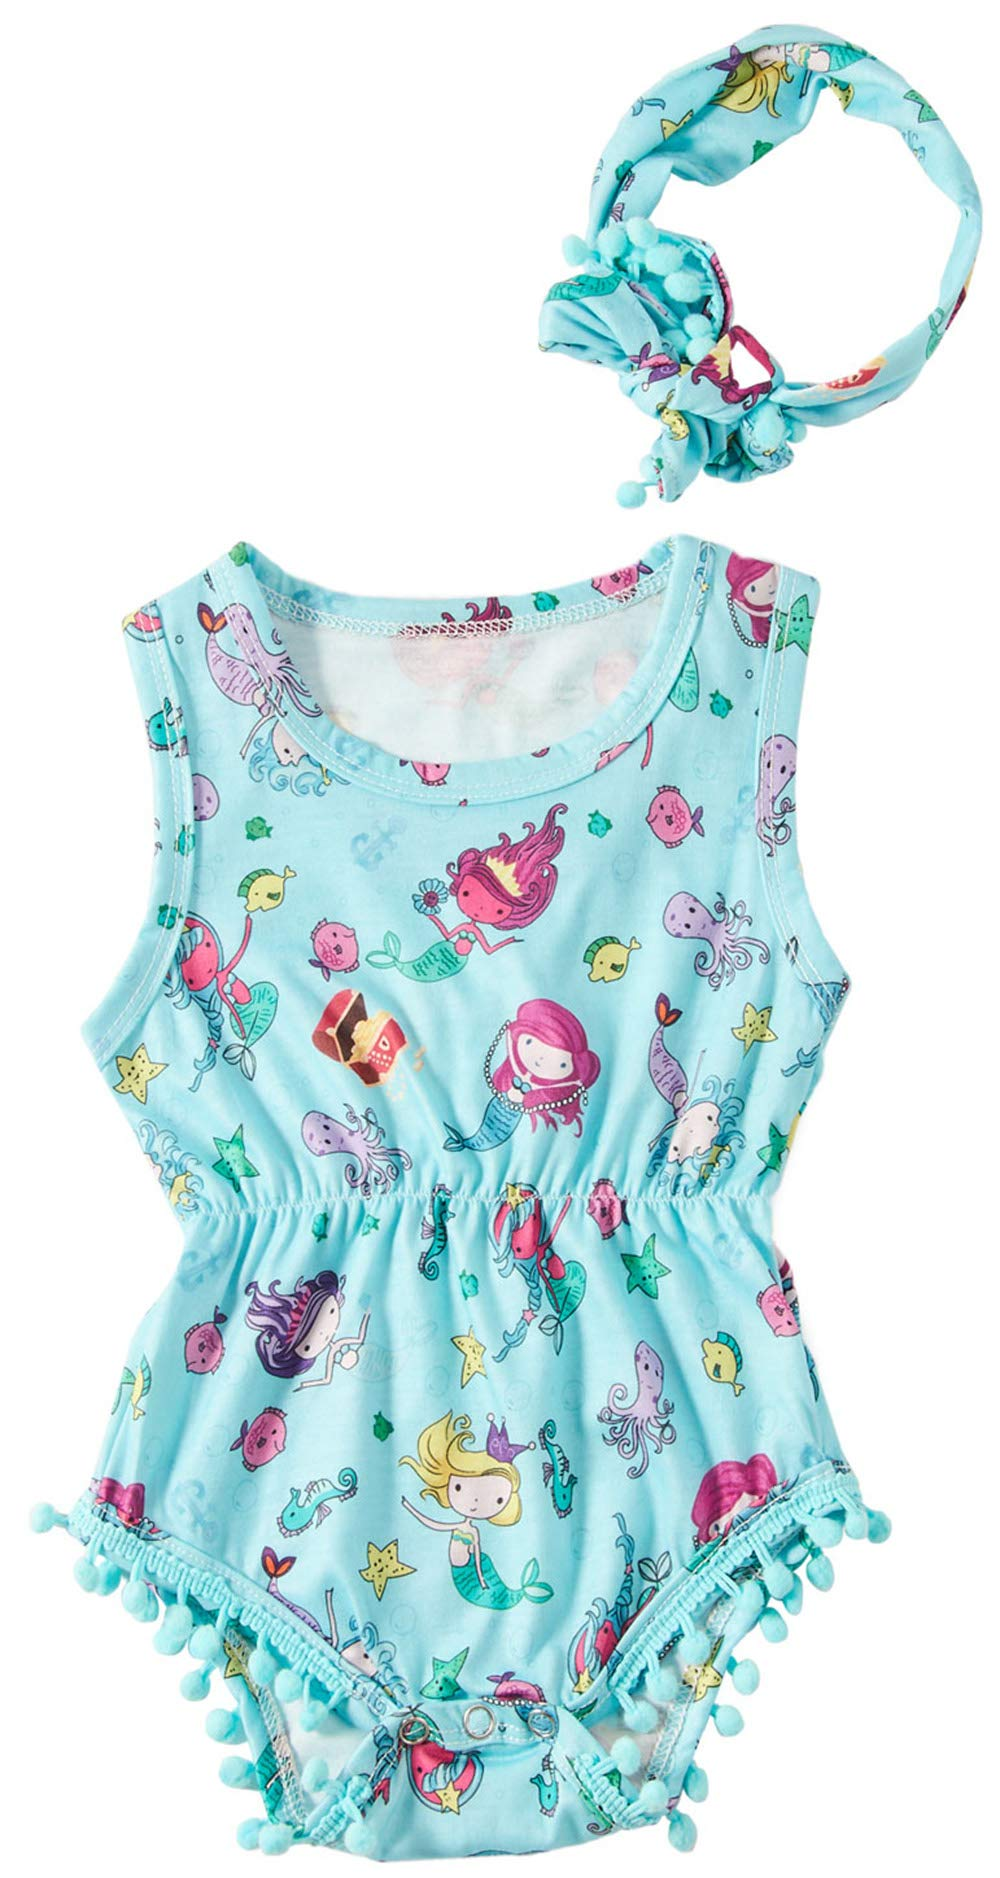 TUONROAD Newborn Toddler Baby Girls Floral Sleeveless Bodysuit Romper Pompom Jumpsuit Outfits Set with Headband 0-24M